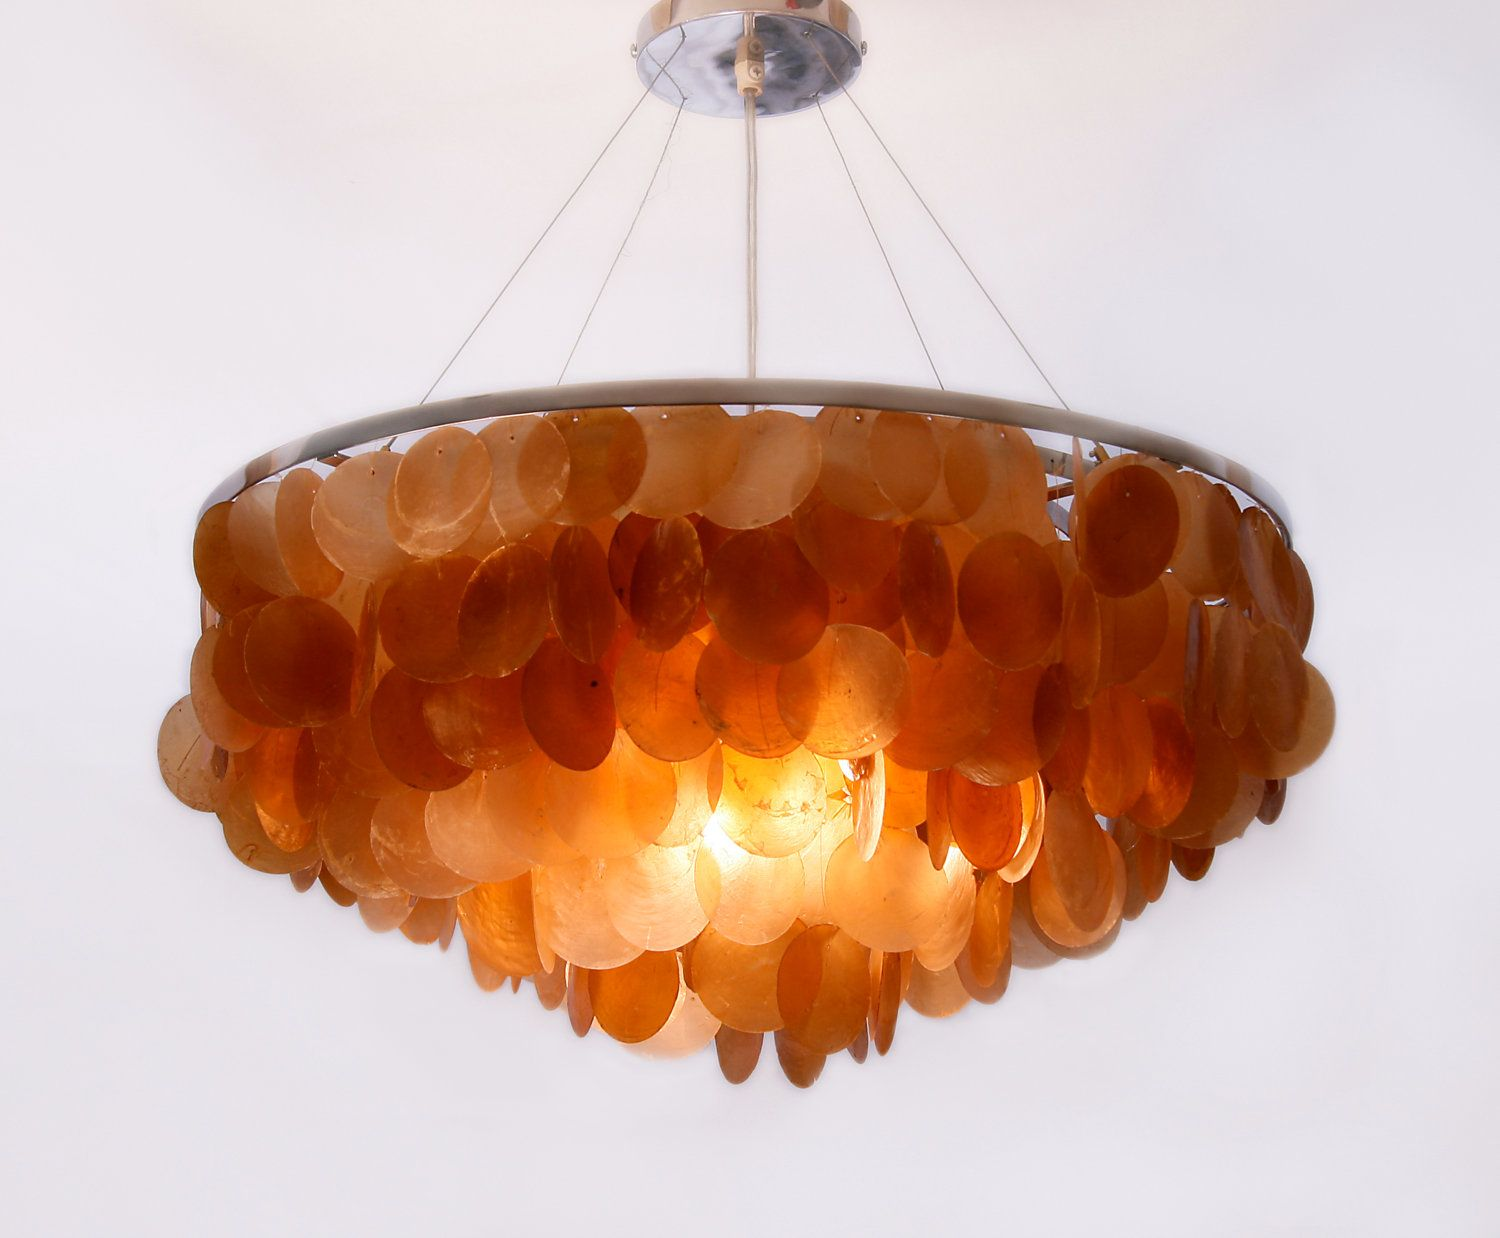 Shell Lighting Orange Capiz Ceiling Light Earth Tones